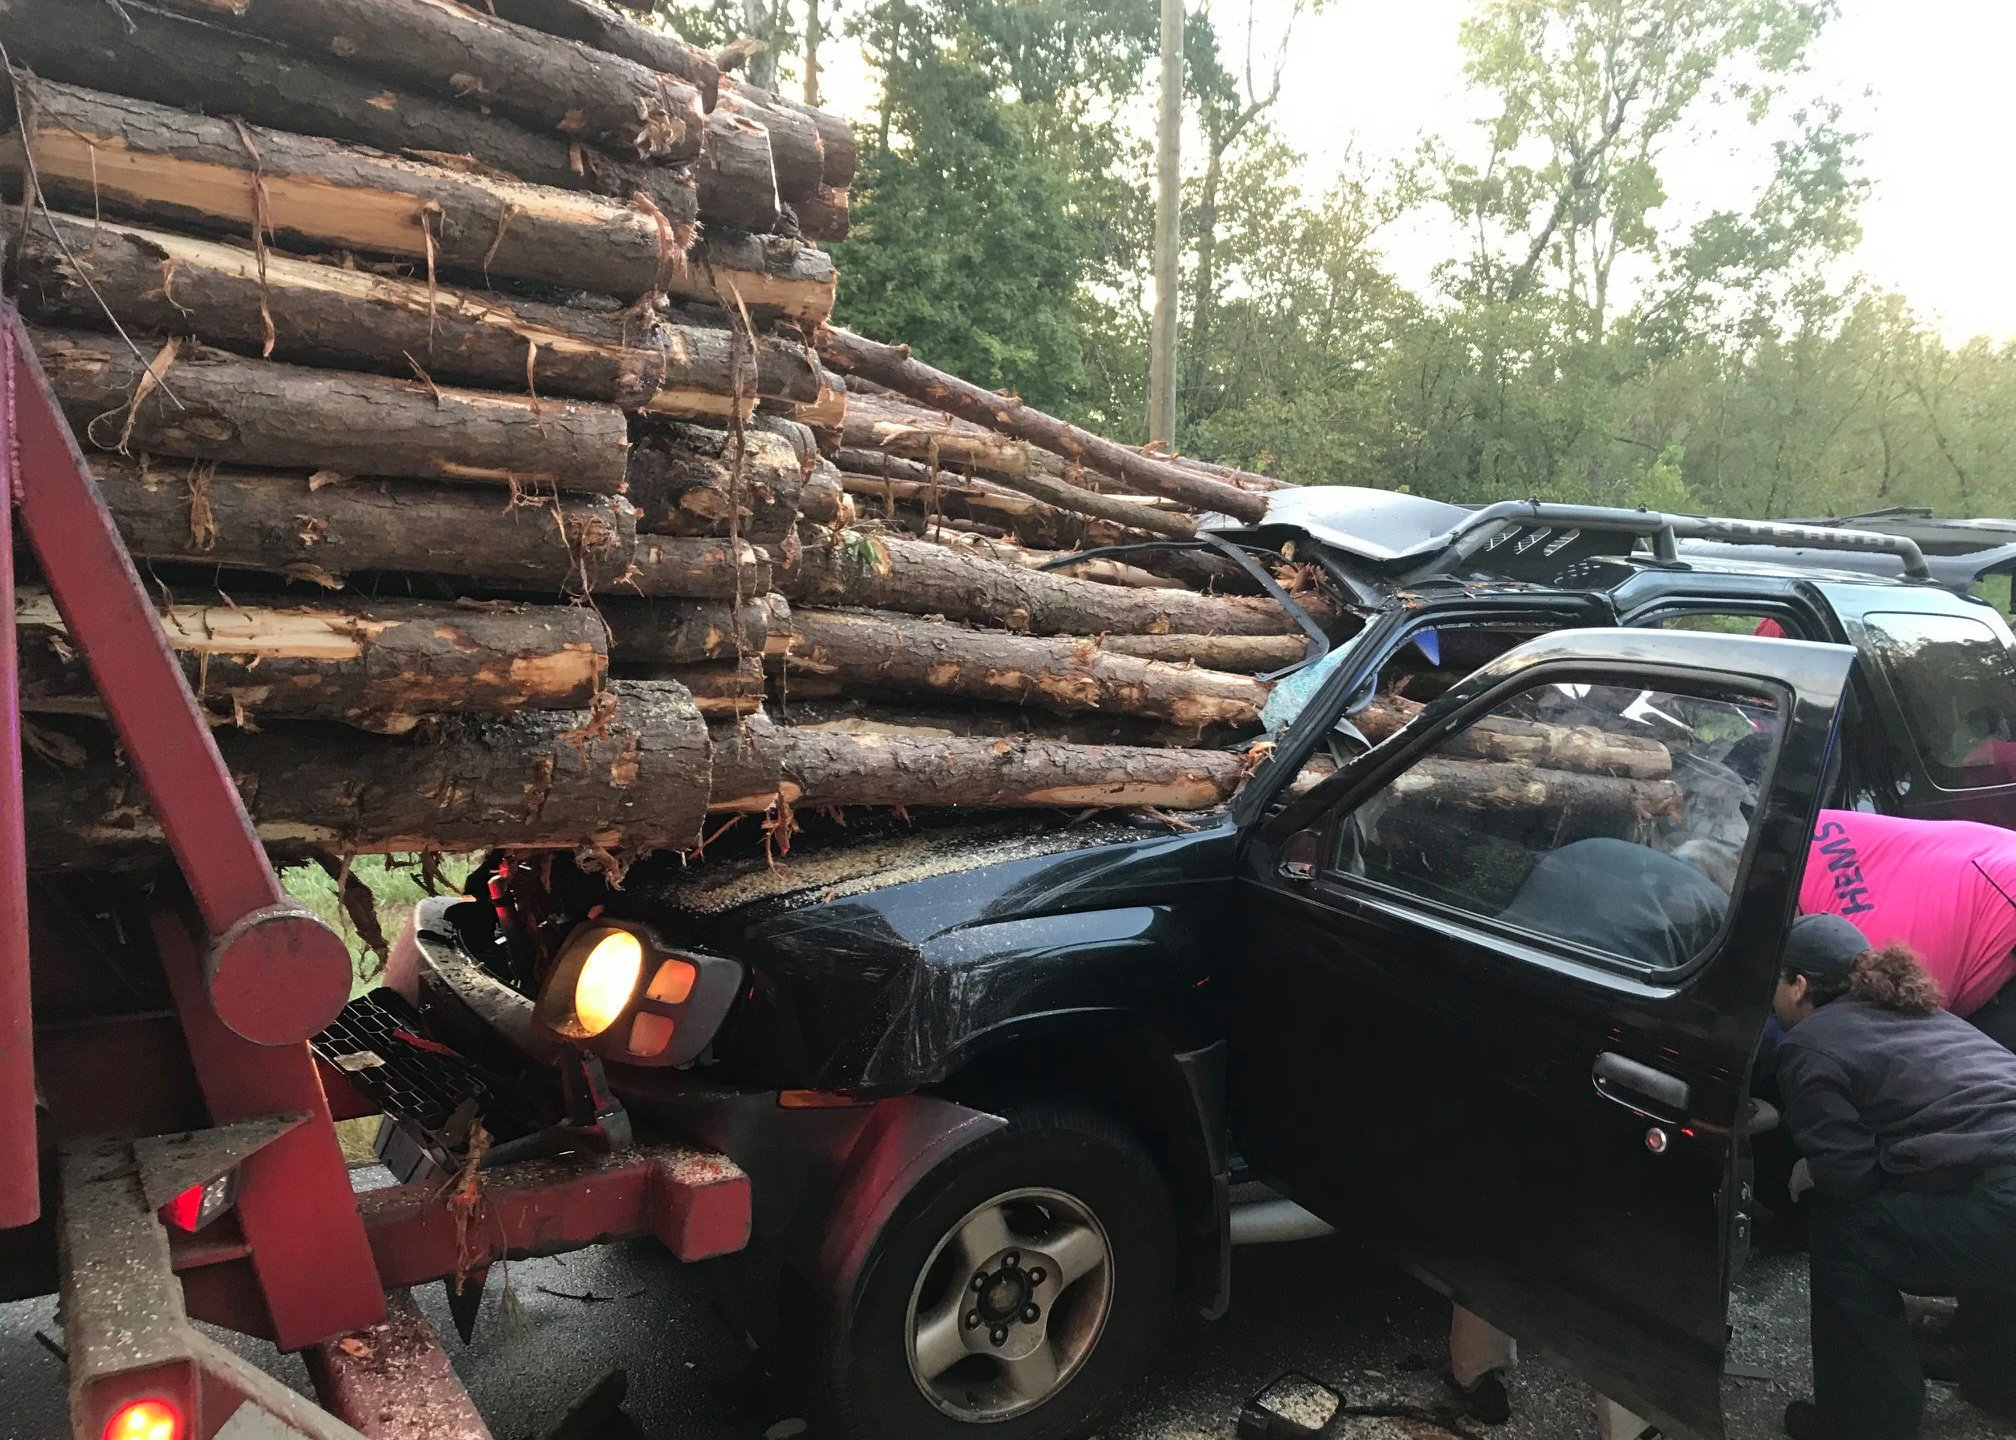 Logs through a car